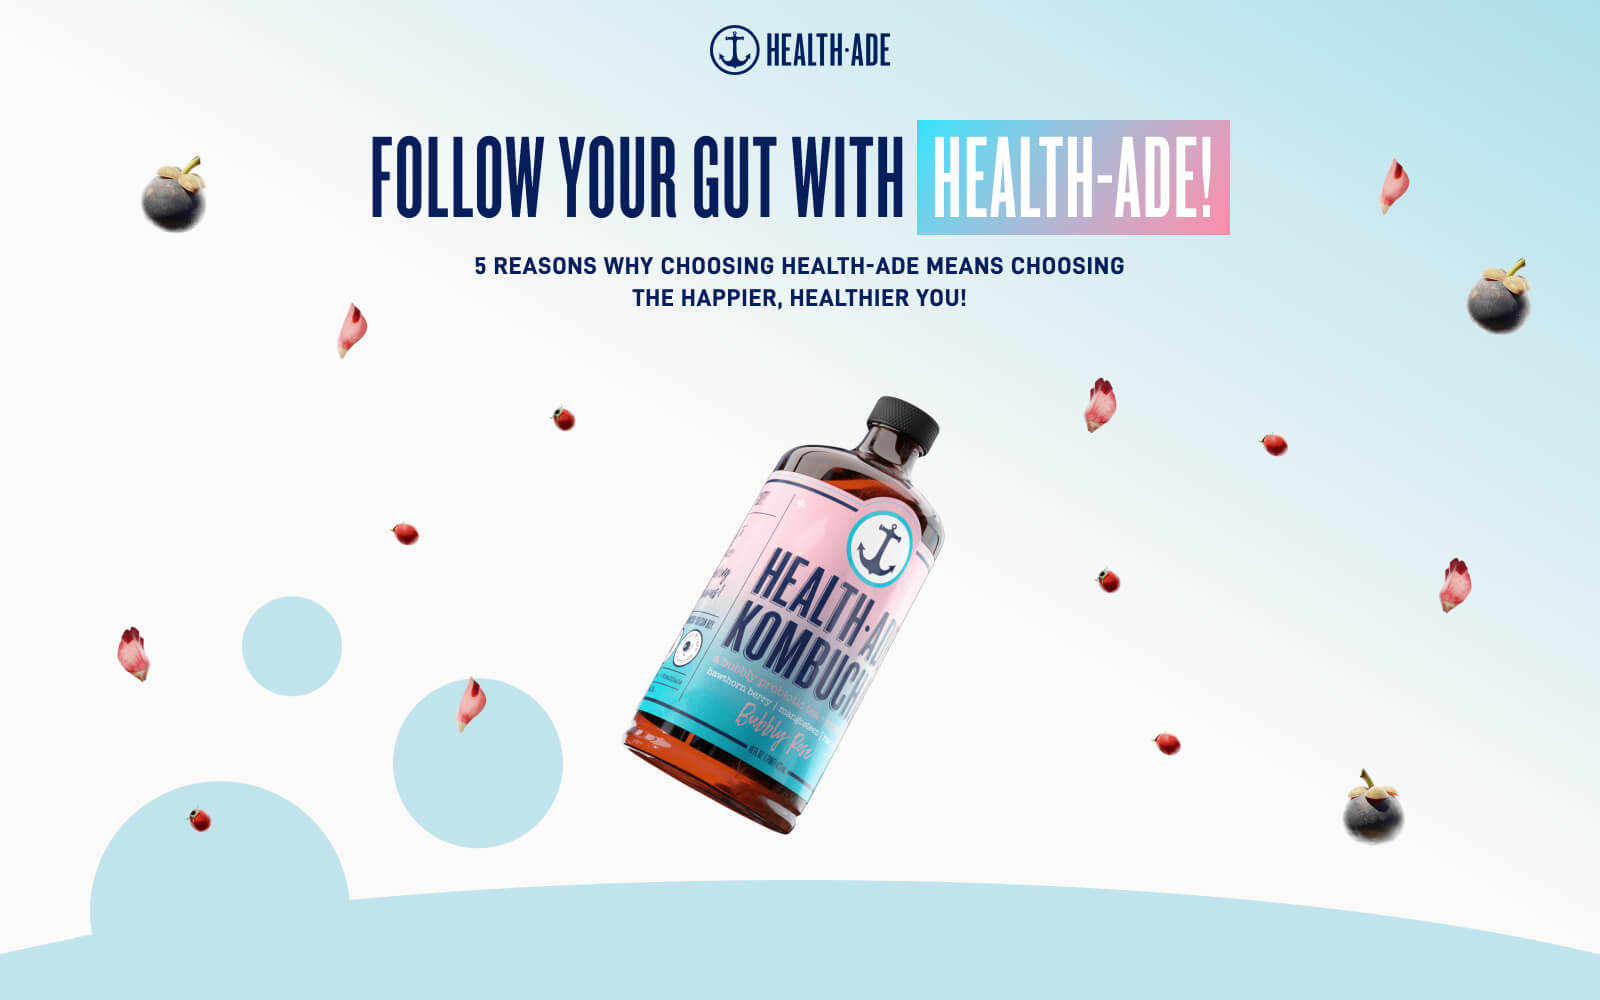 """The Health-Ade website portraying fruit and floral raw ingrediants for their beverage floating over a light gradient background with a featured bottle in the middle and large tagline saying """"Follow your gut with Health-Ade"""""""